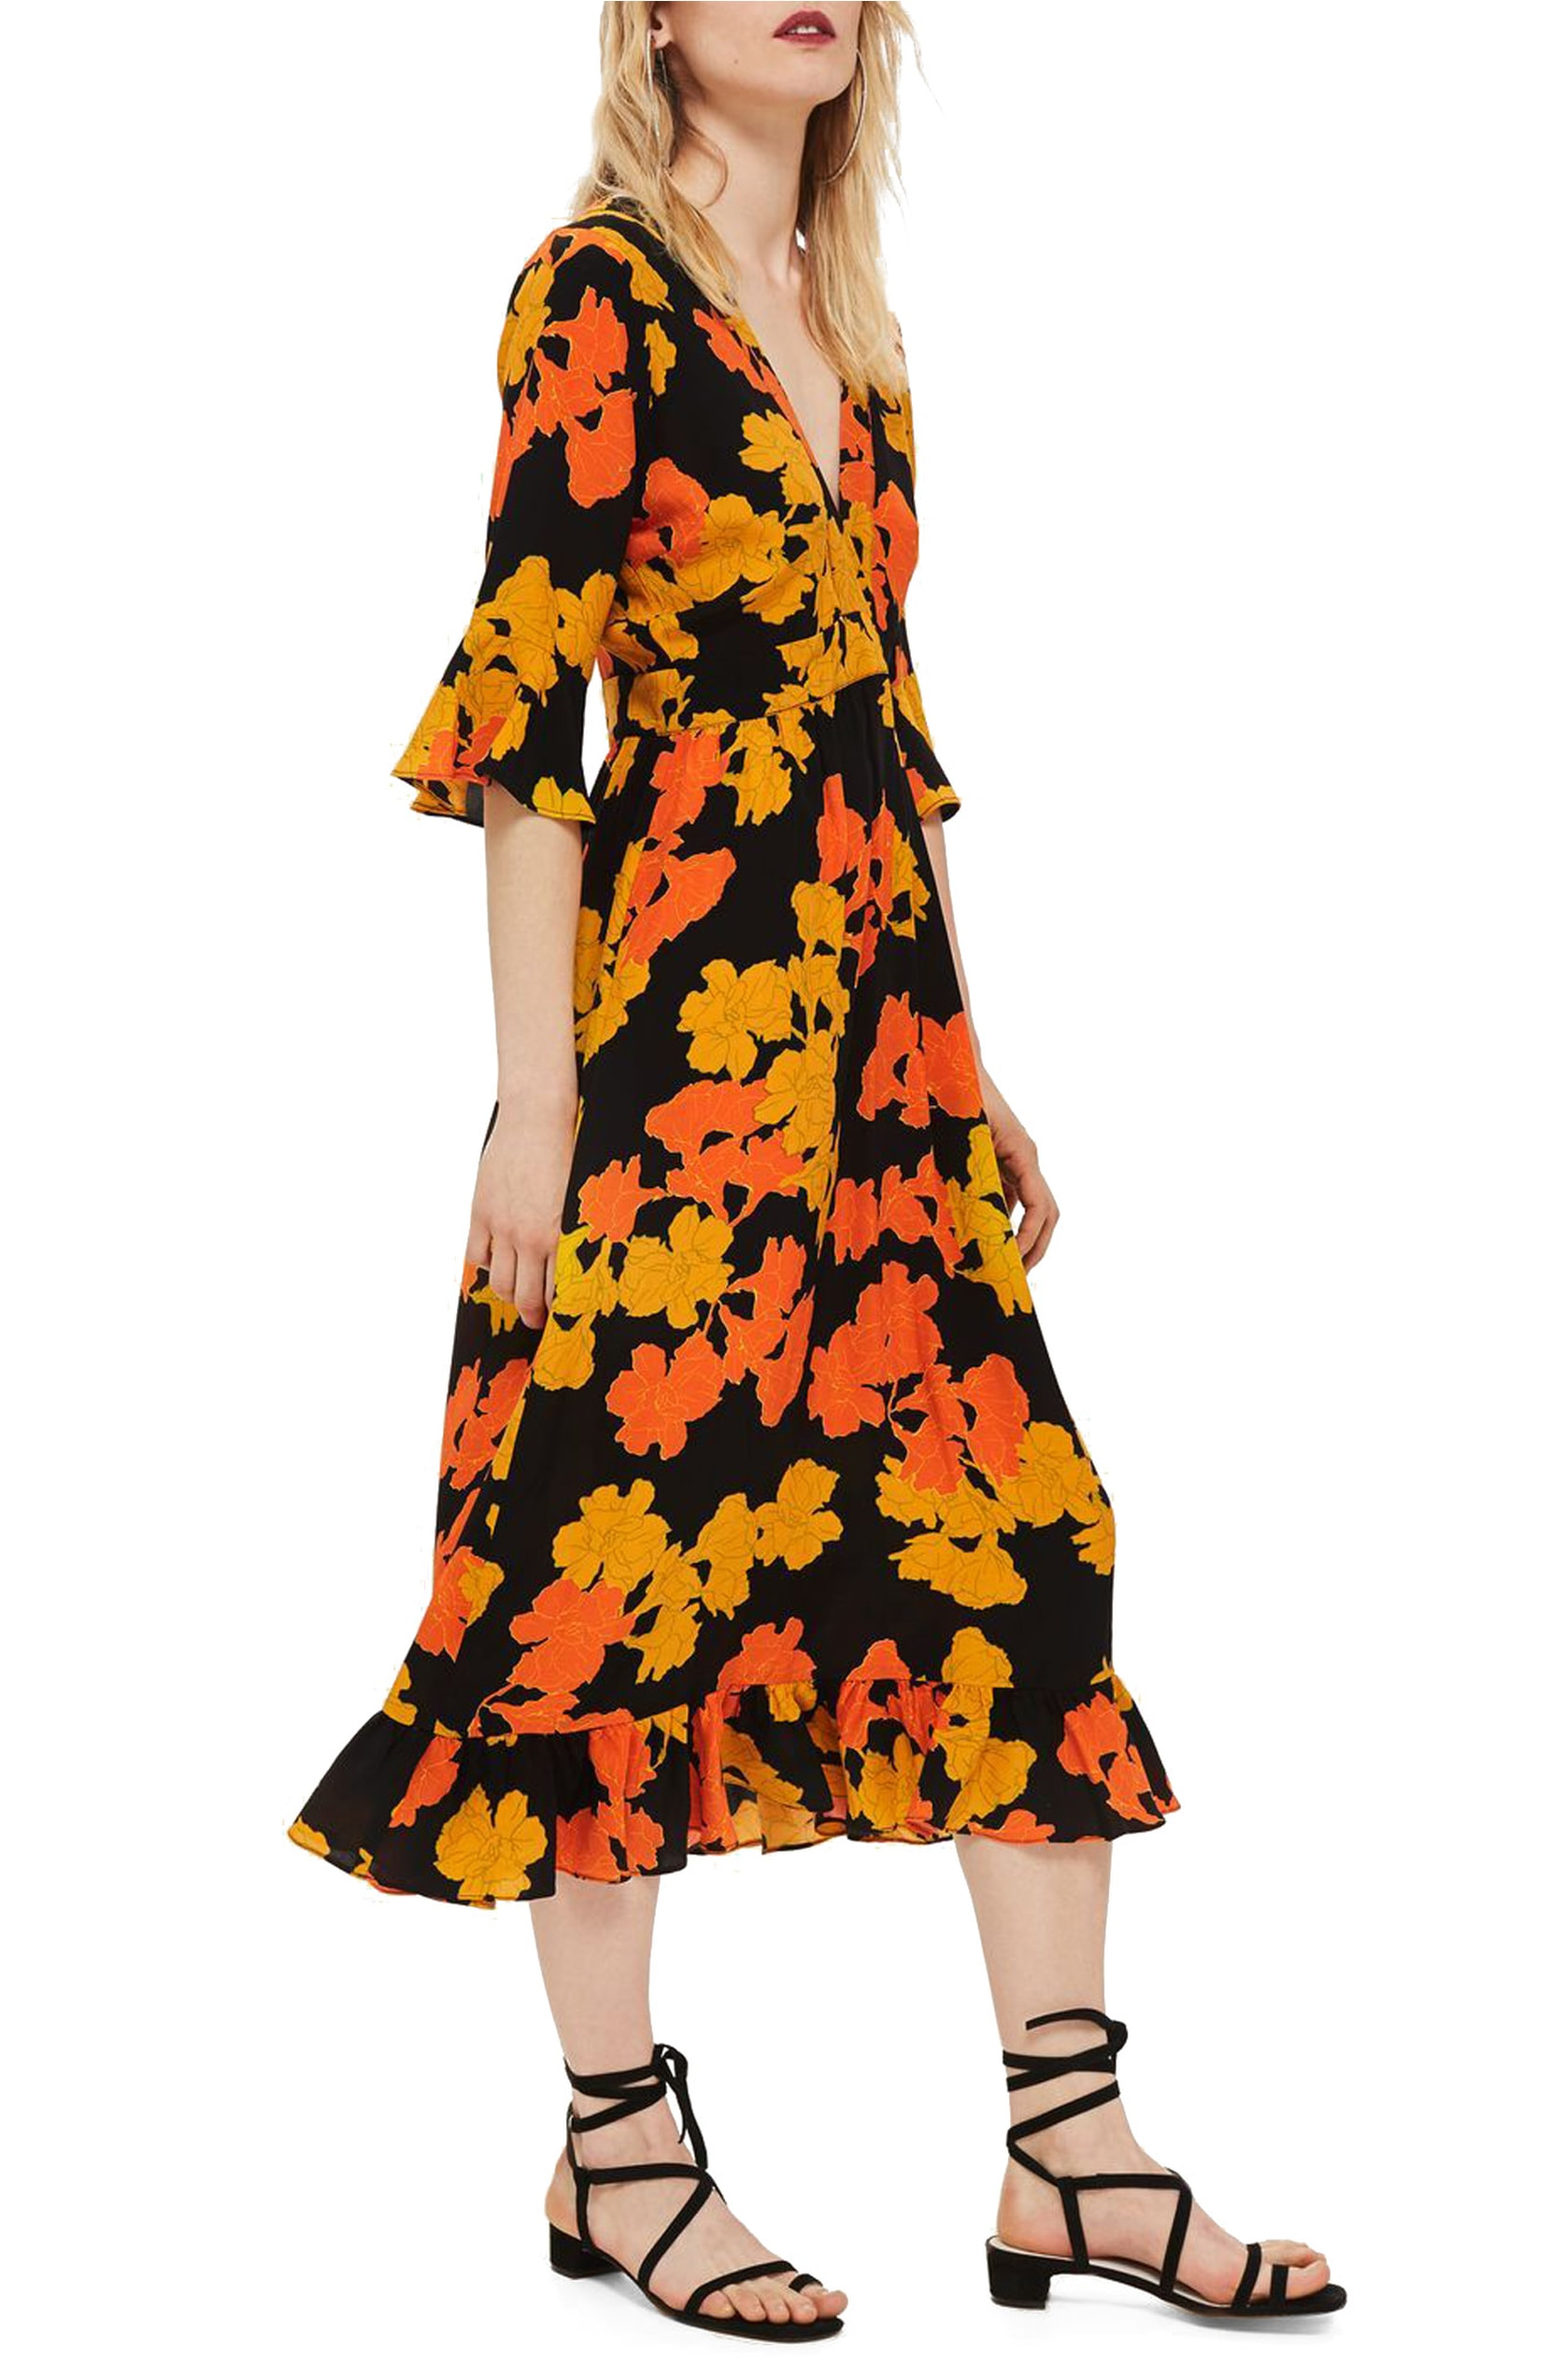 Bold Floral Midi Dress. Sale: $62.90 / After Sale: $95.00. (Image: Nordstrom){ }